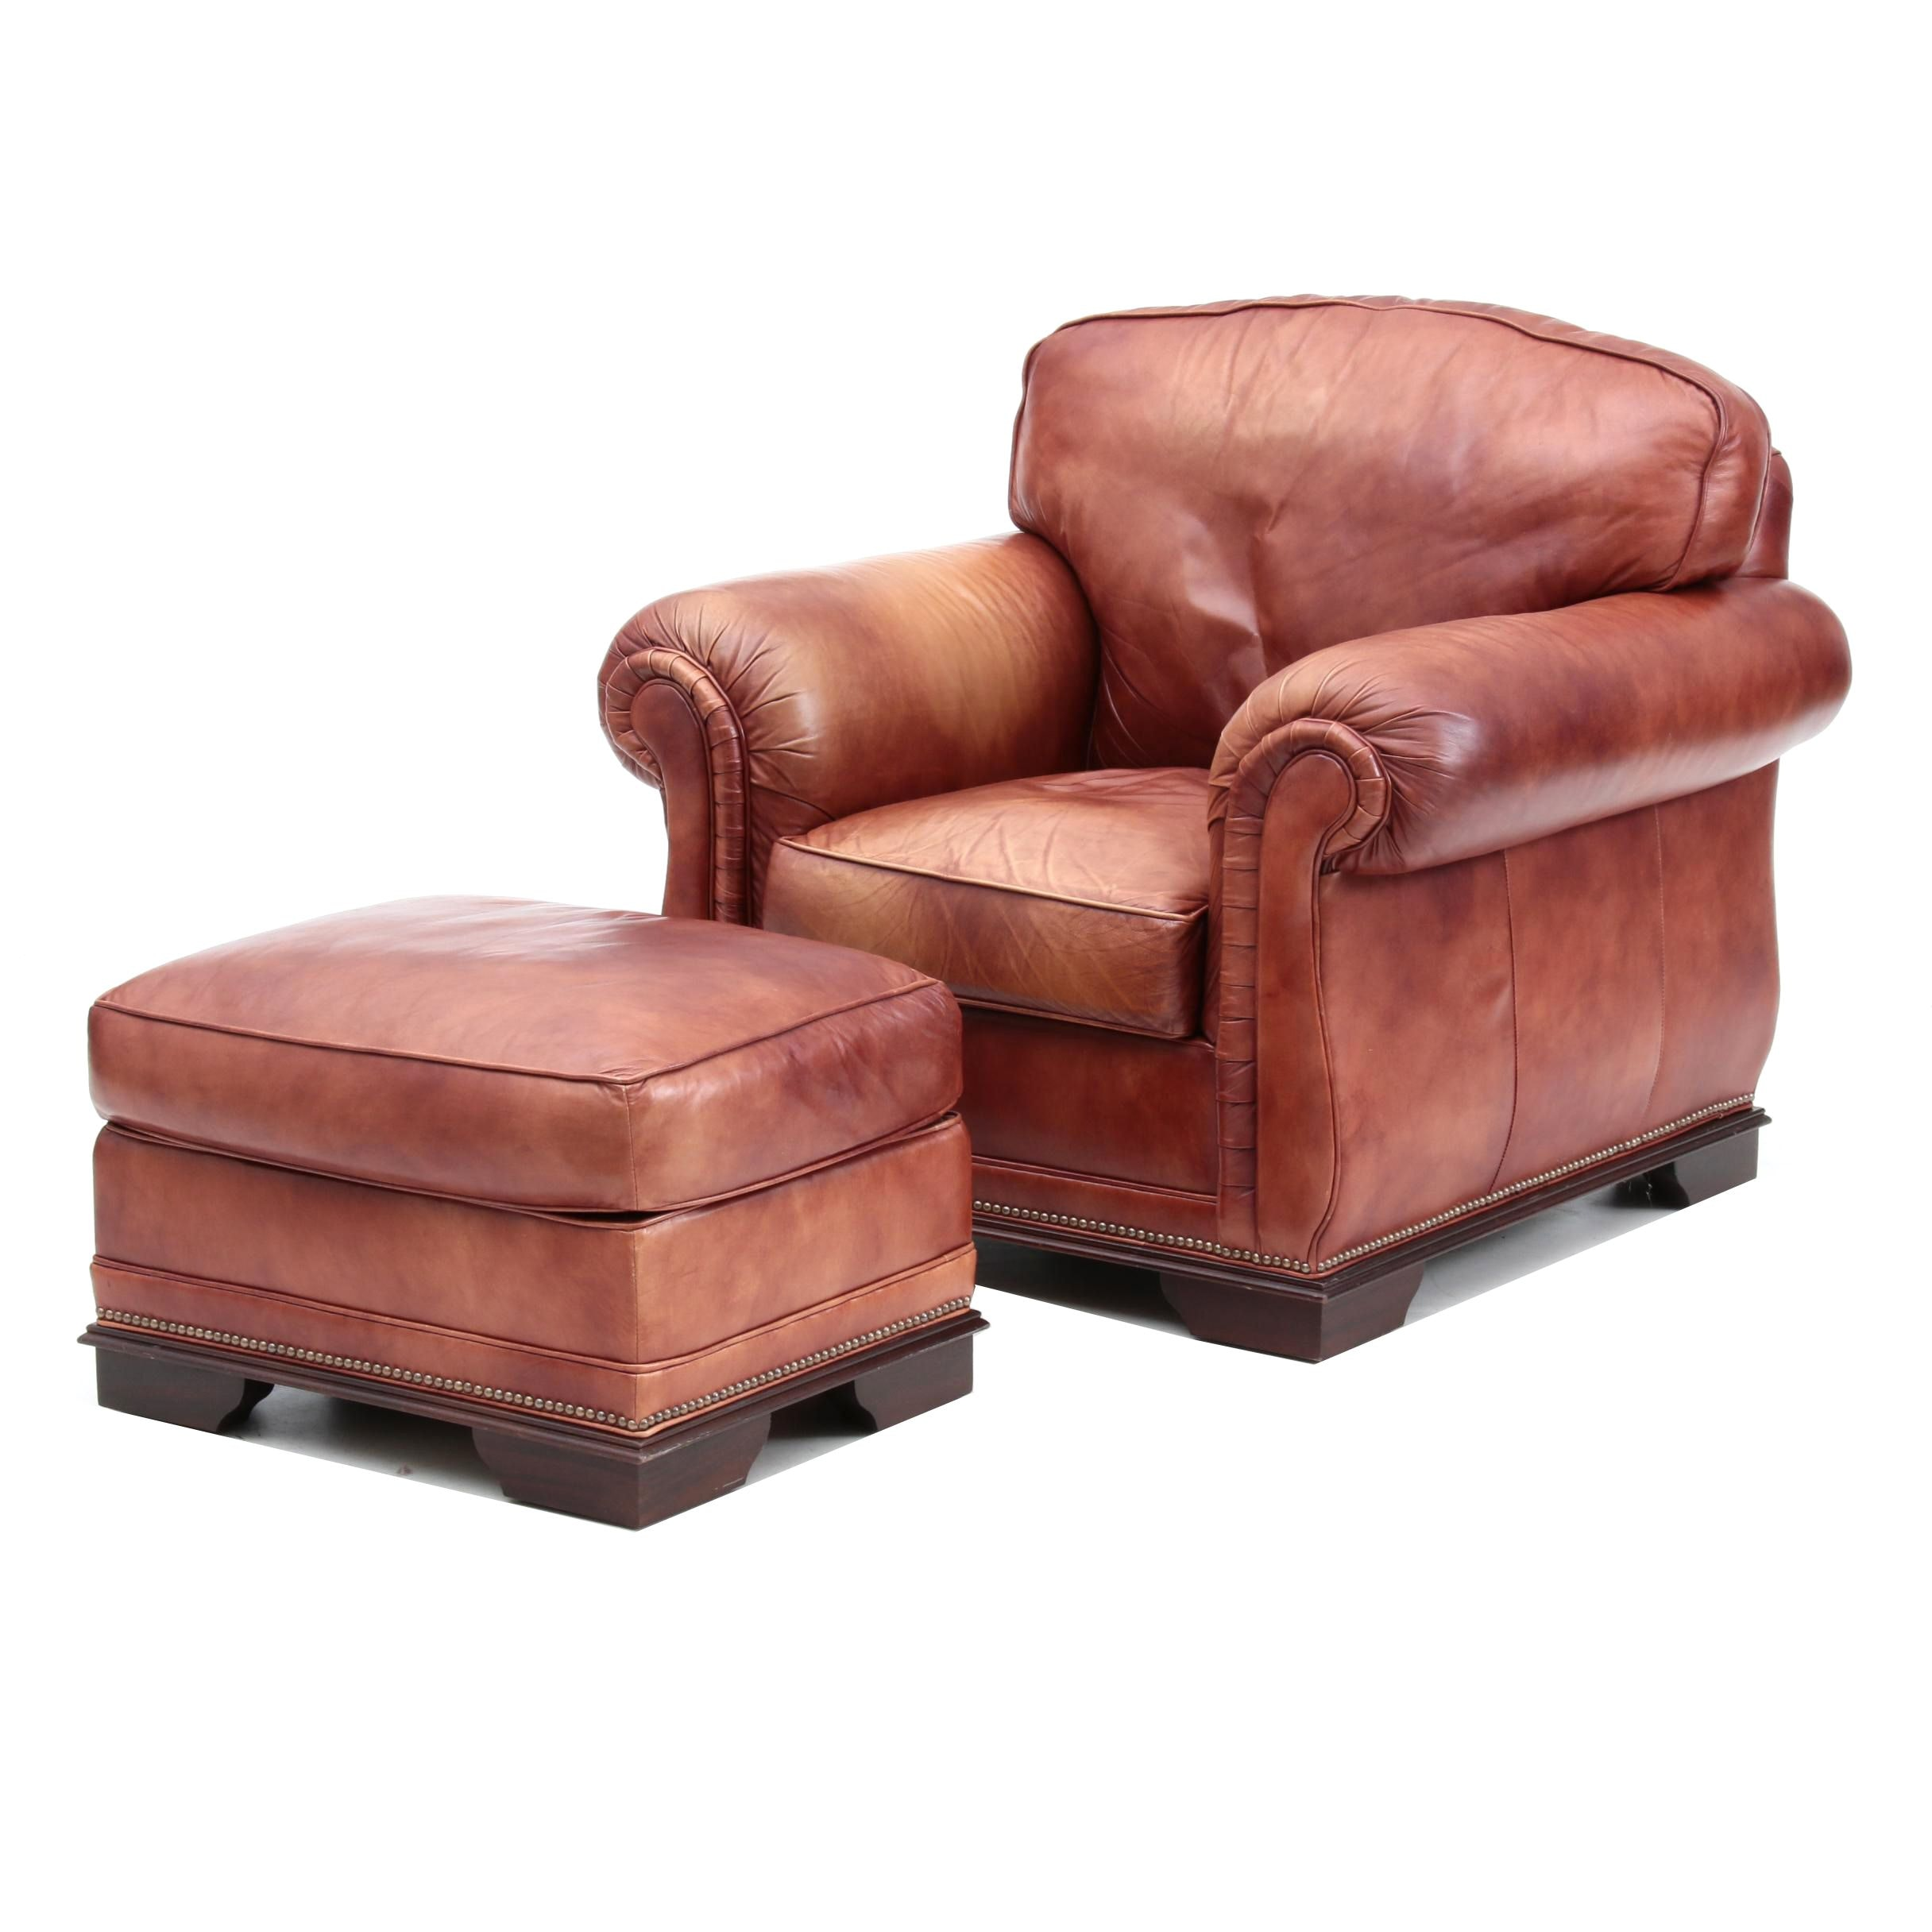 Contemporary Leather Armchair and Ottoman by Classic Leather Inc.